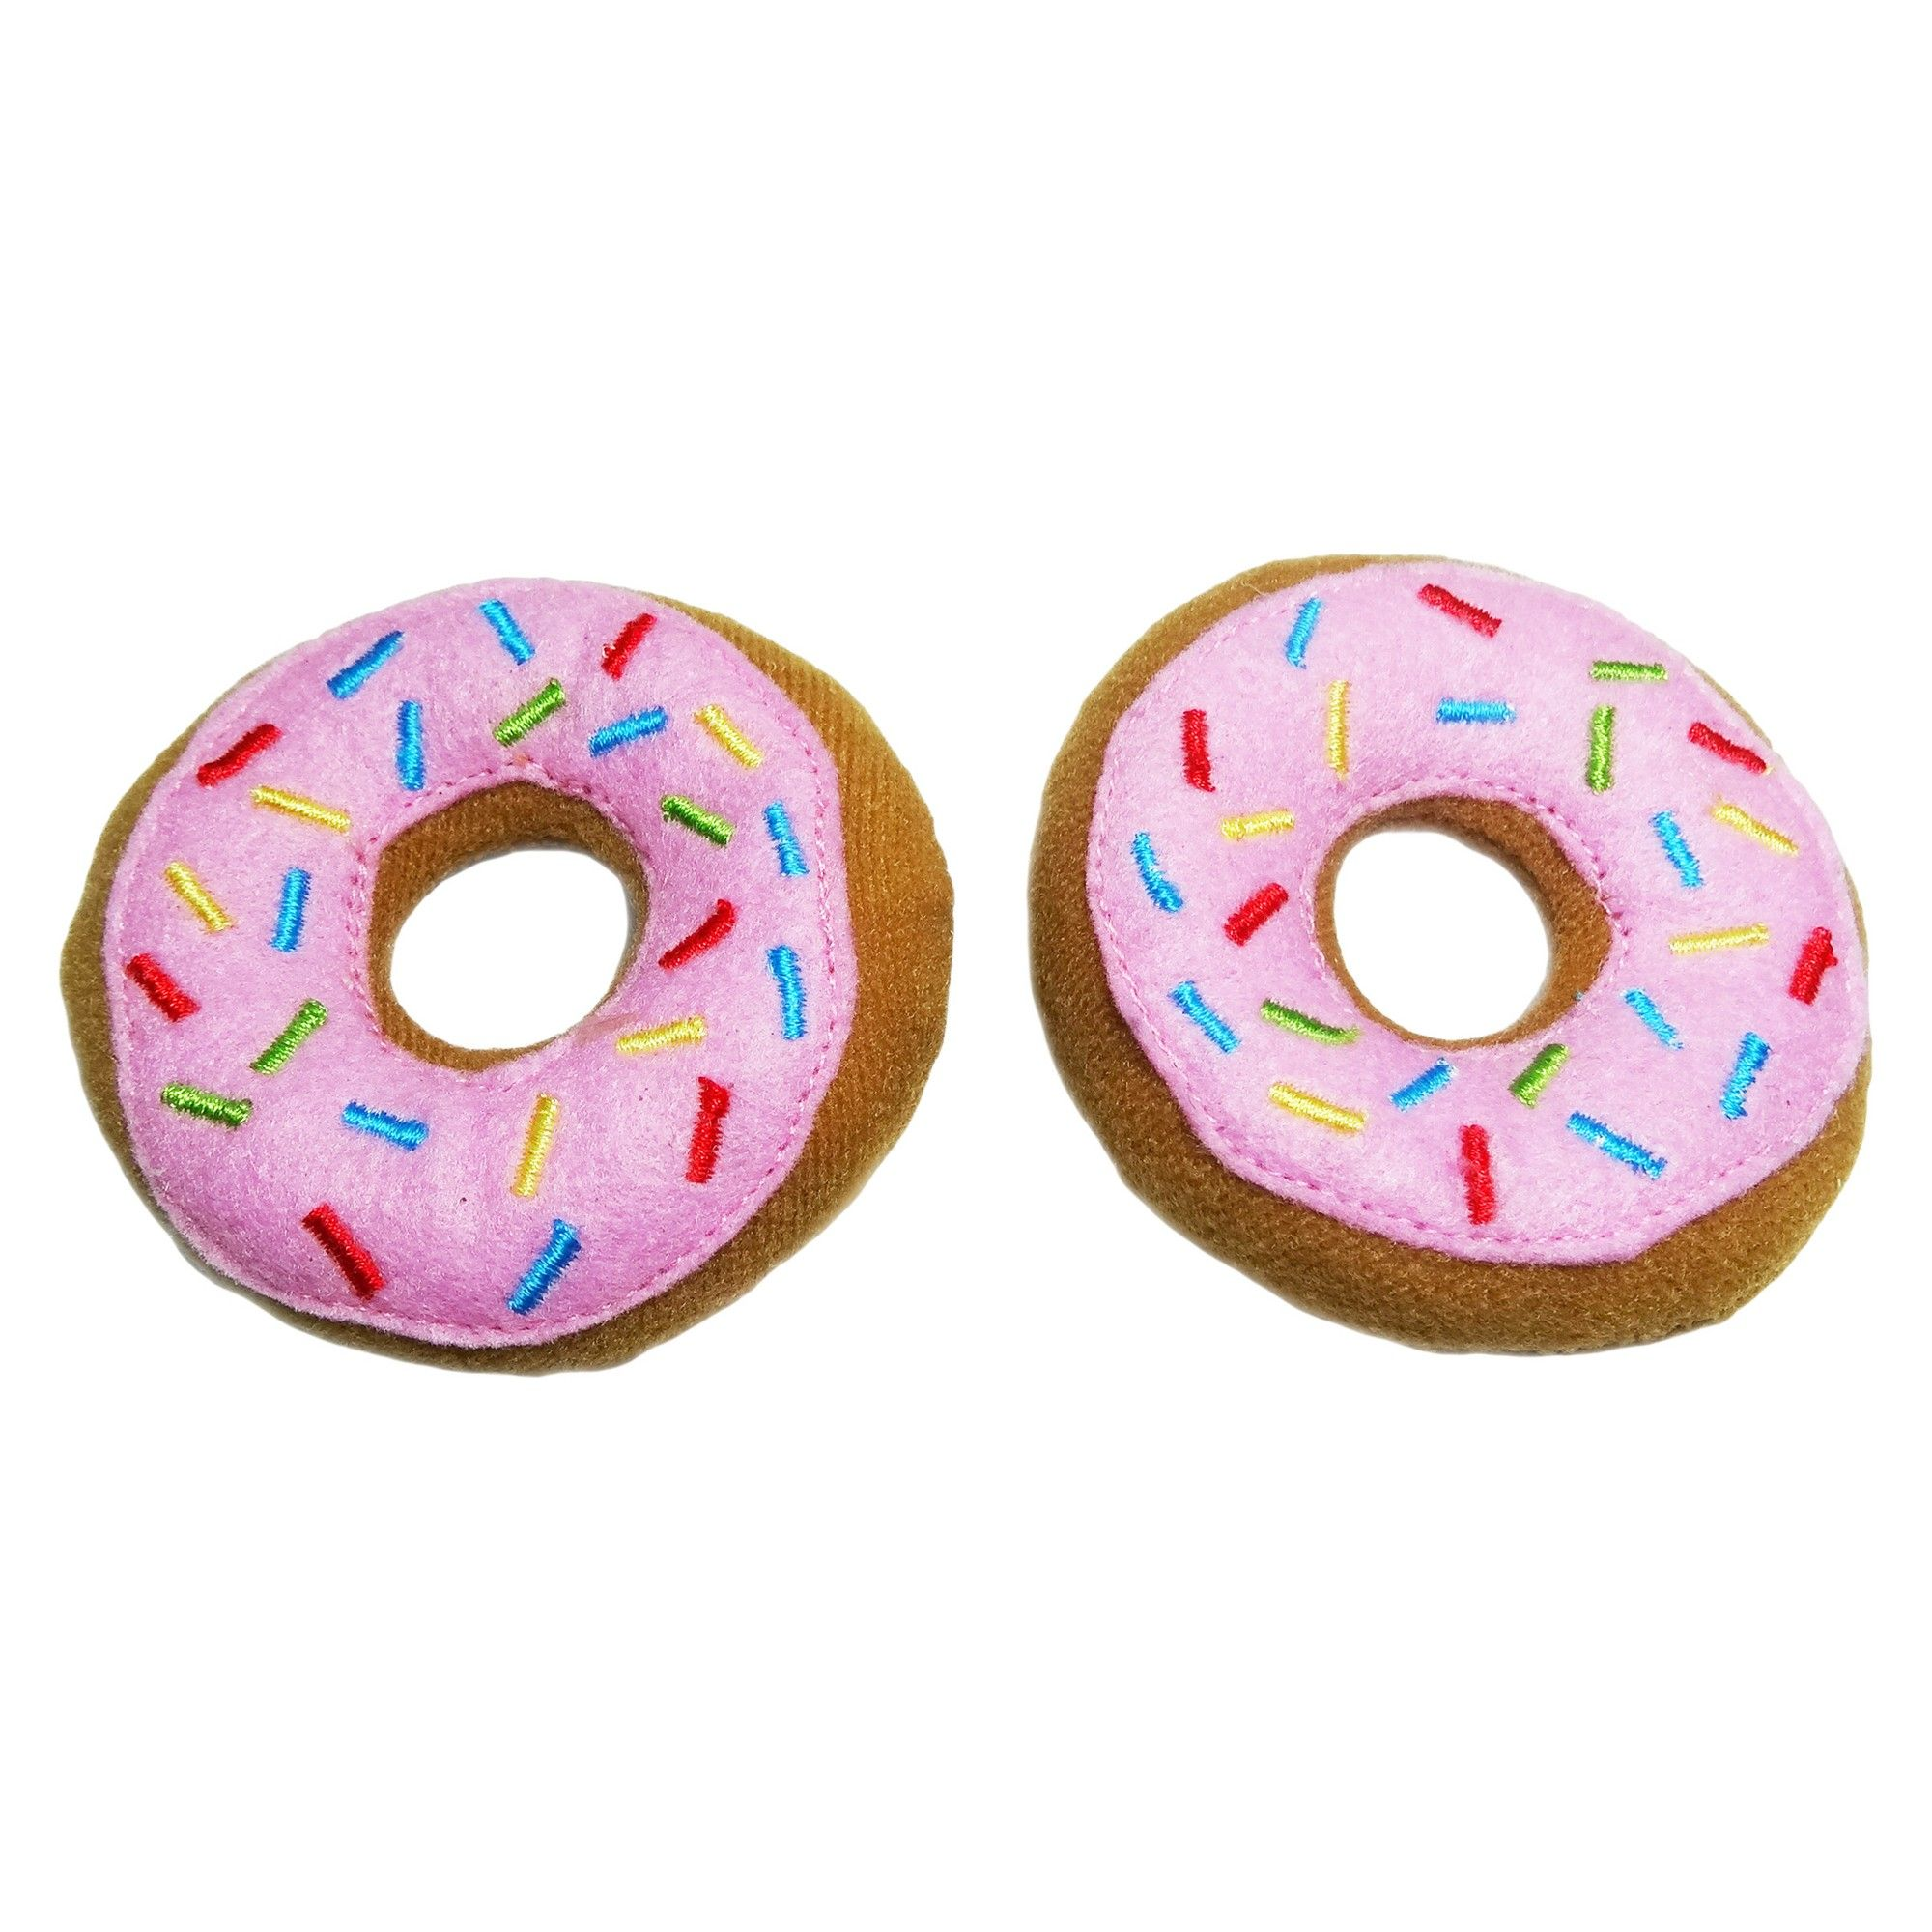 Donuts Pet Toy Set 2pk Boots Barkley Pink Brown Pet Toys